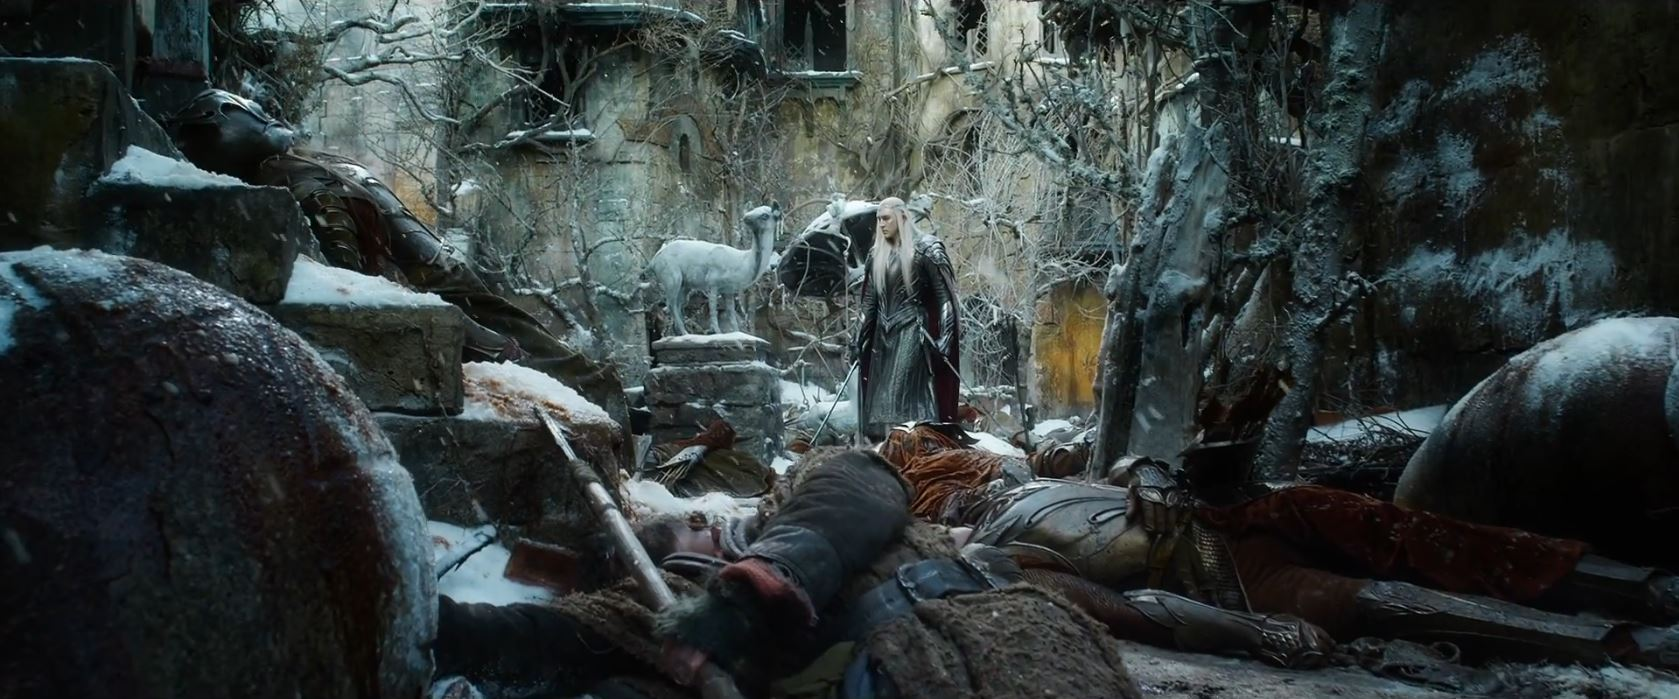 The Hobbit The Battle of the Five Armies Trailer - Thranduil